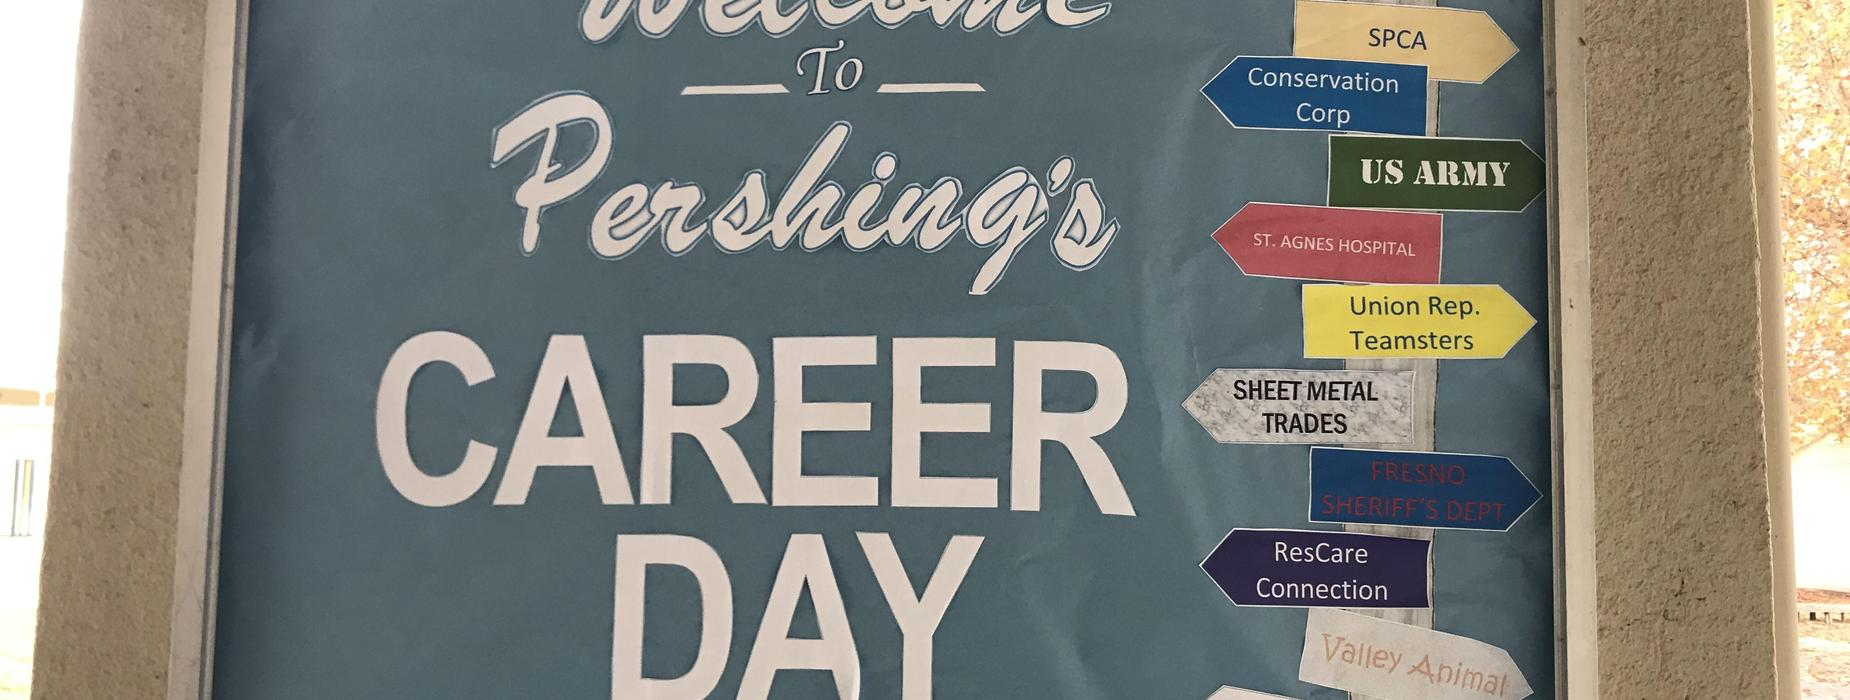 Pershing Career Day